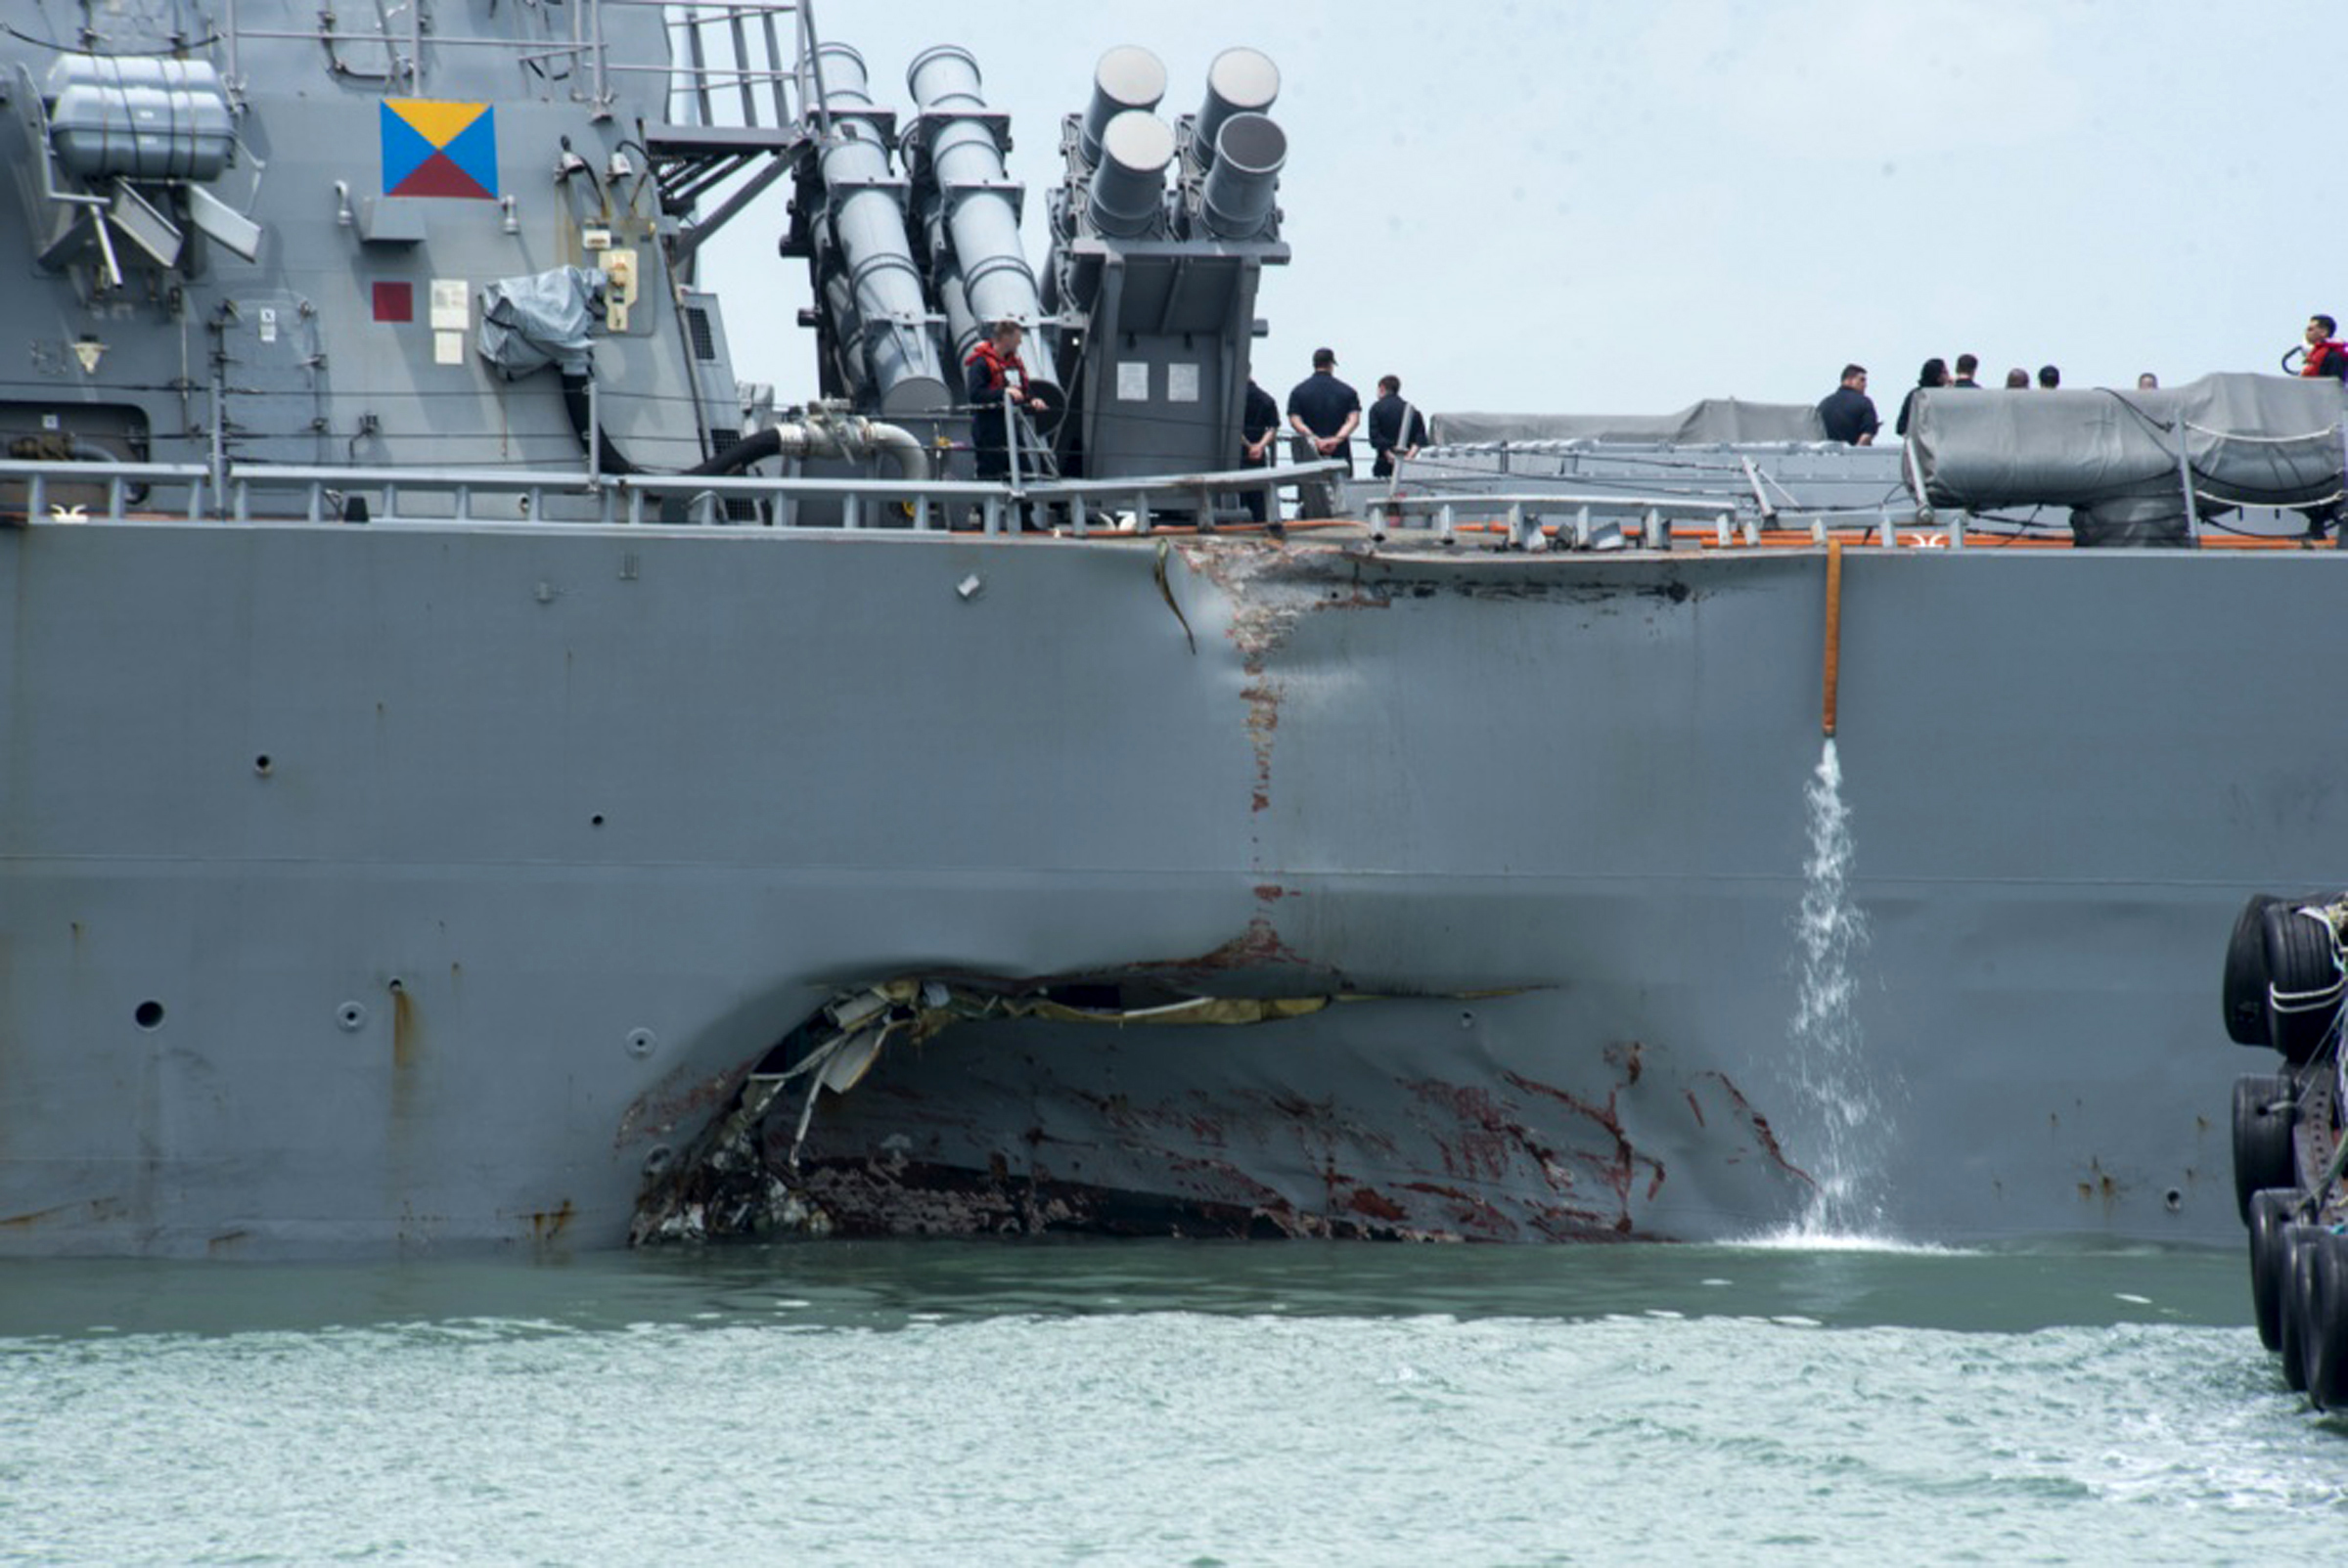 APTOPIX Singapore US Navy Ship Collision The damaged port aft hull of USS John S. McCain, left, is seen while docked next to USS America at Singapore's Changi naval base on Tuesday, Aug. 22, 2017 in Singapore. The focus of the search for 10 U.S. sailors missing after a collision between the USS John S. McCain and an oil tanker in Southeast Asian waters shifted Tuesday to the damaged destroyer's flooded compartments. (AP Photo/Wong Maye-E)